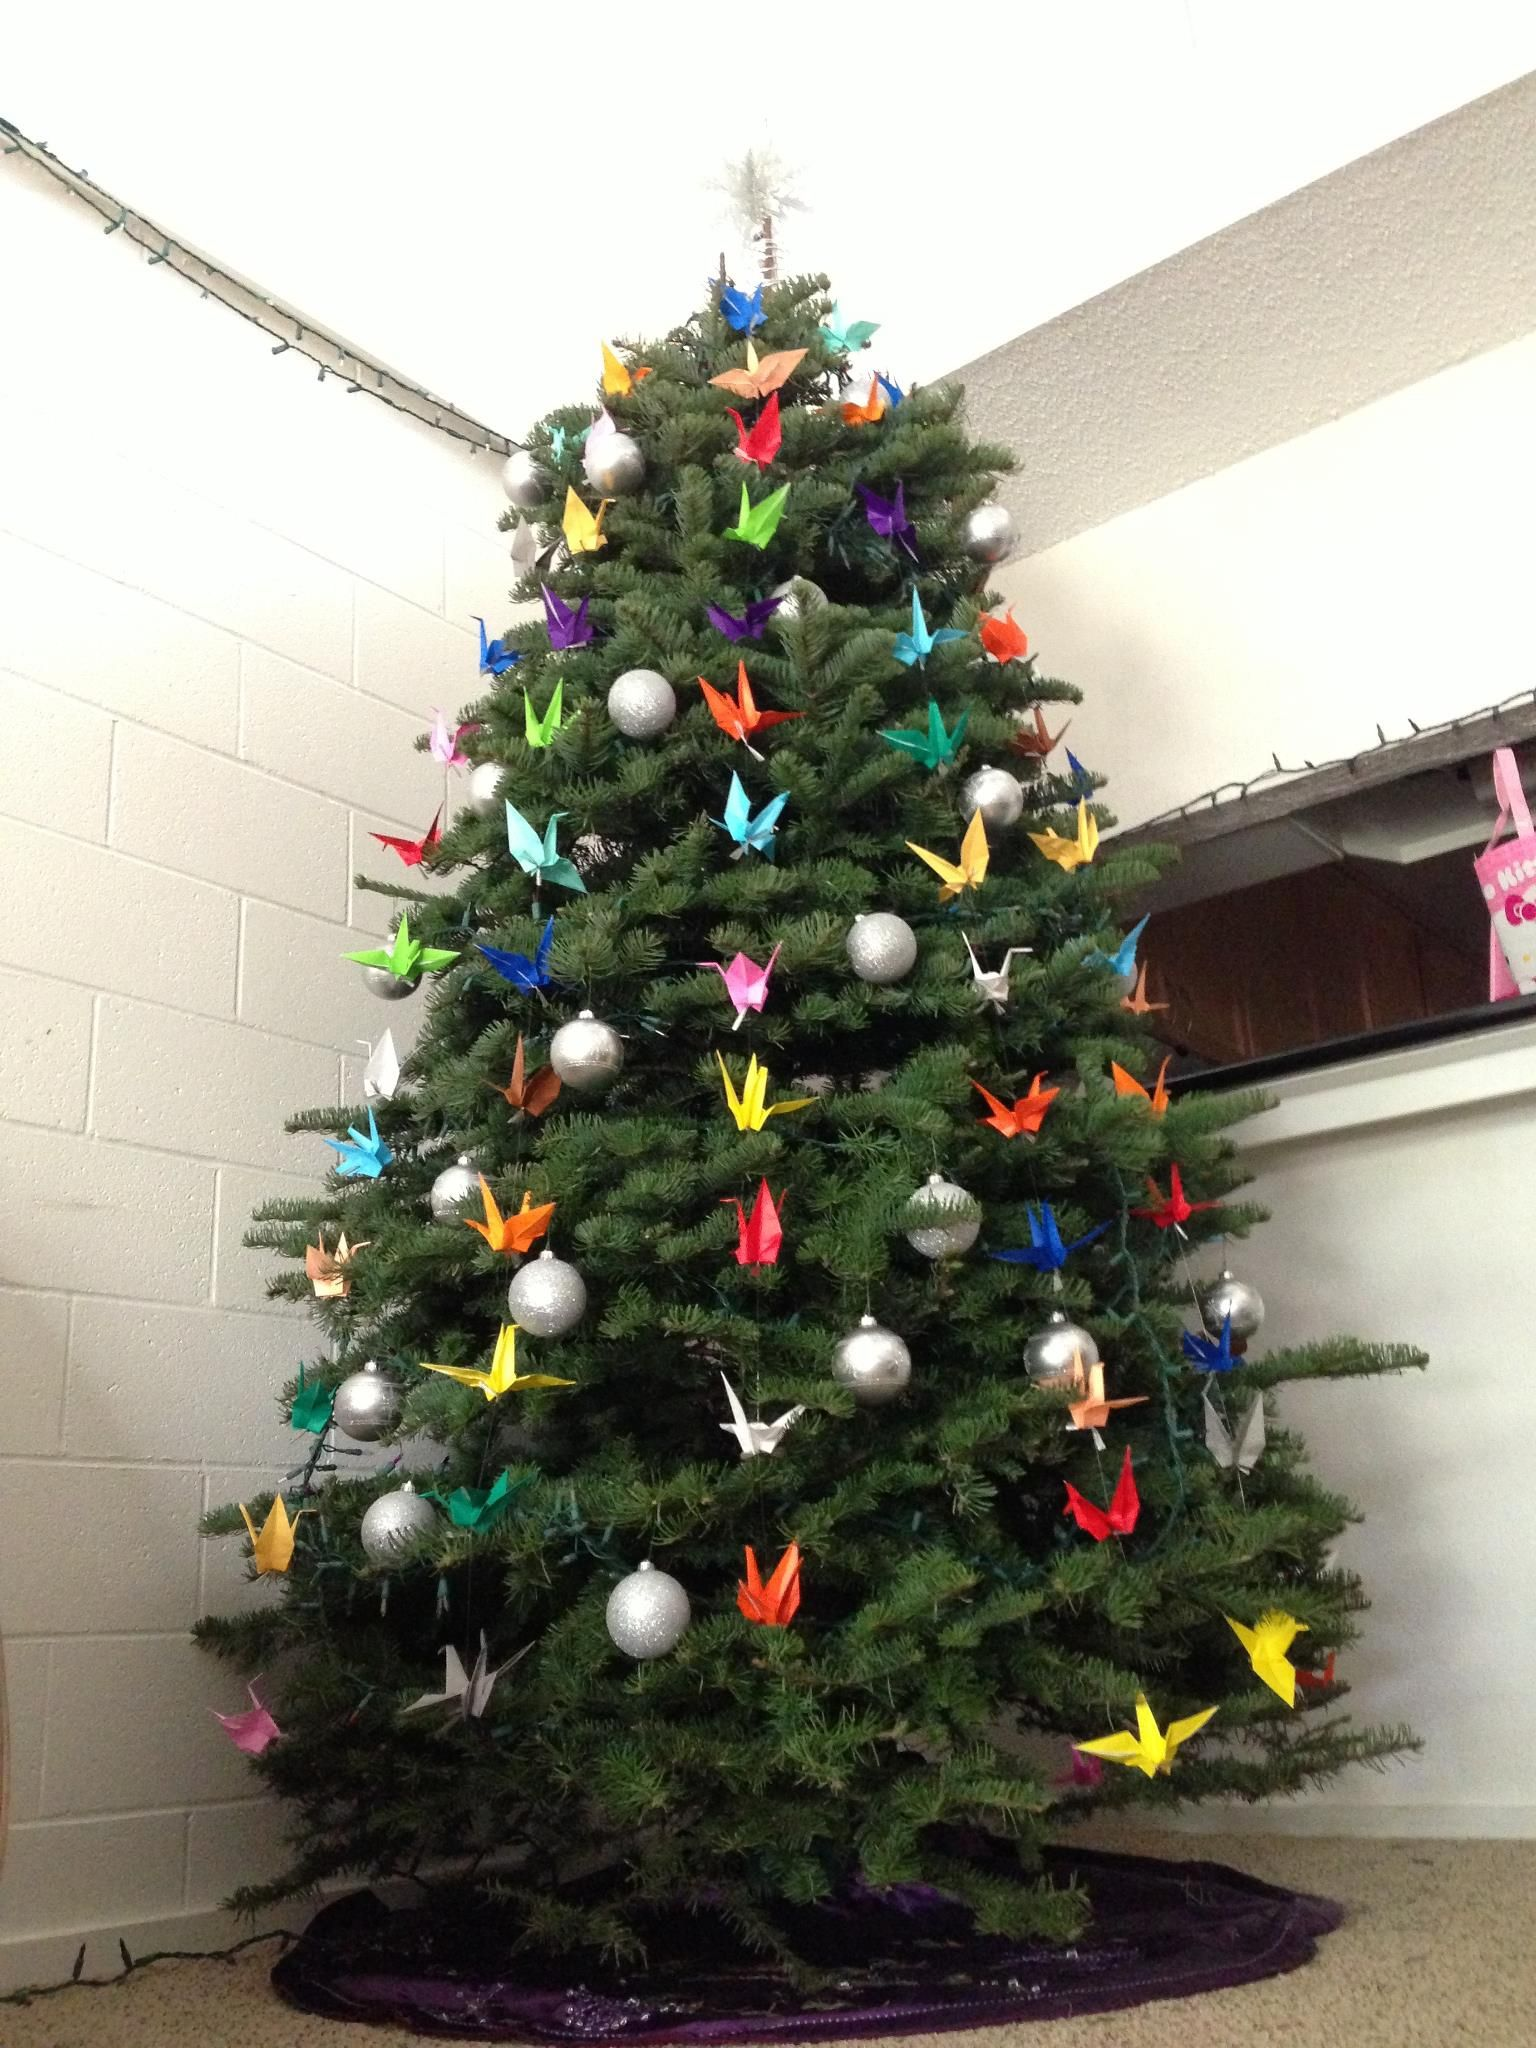 Origami cranes to decorate the Christmas tree   Holiday   Pinterest ...